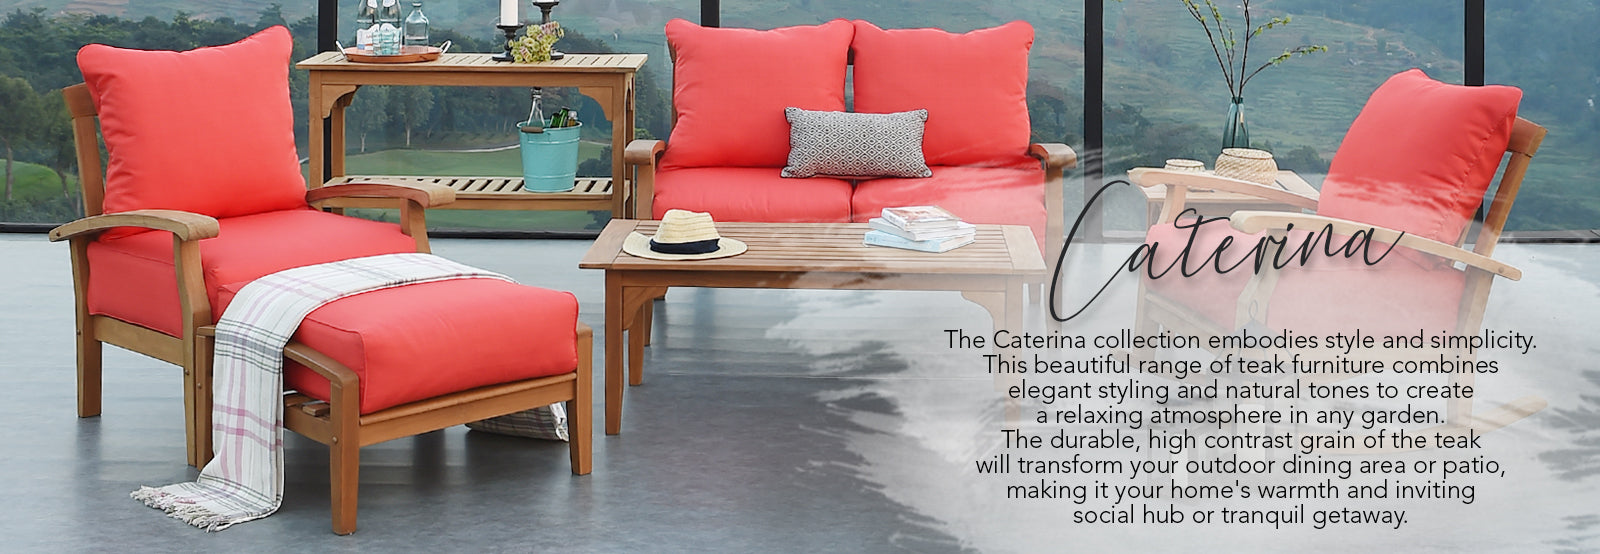 Discover our beautiful Caterina collection from Cambridge Casual - an elegant set of furniture made from natural and durable teak. Shop the range, here.